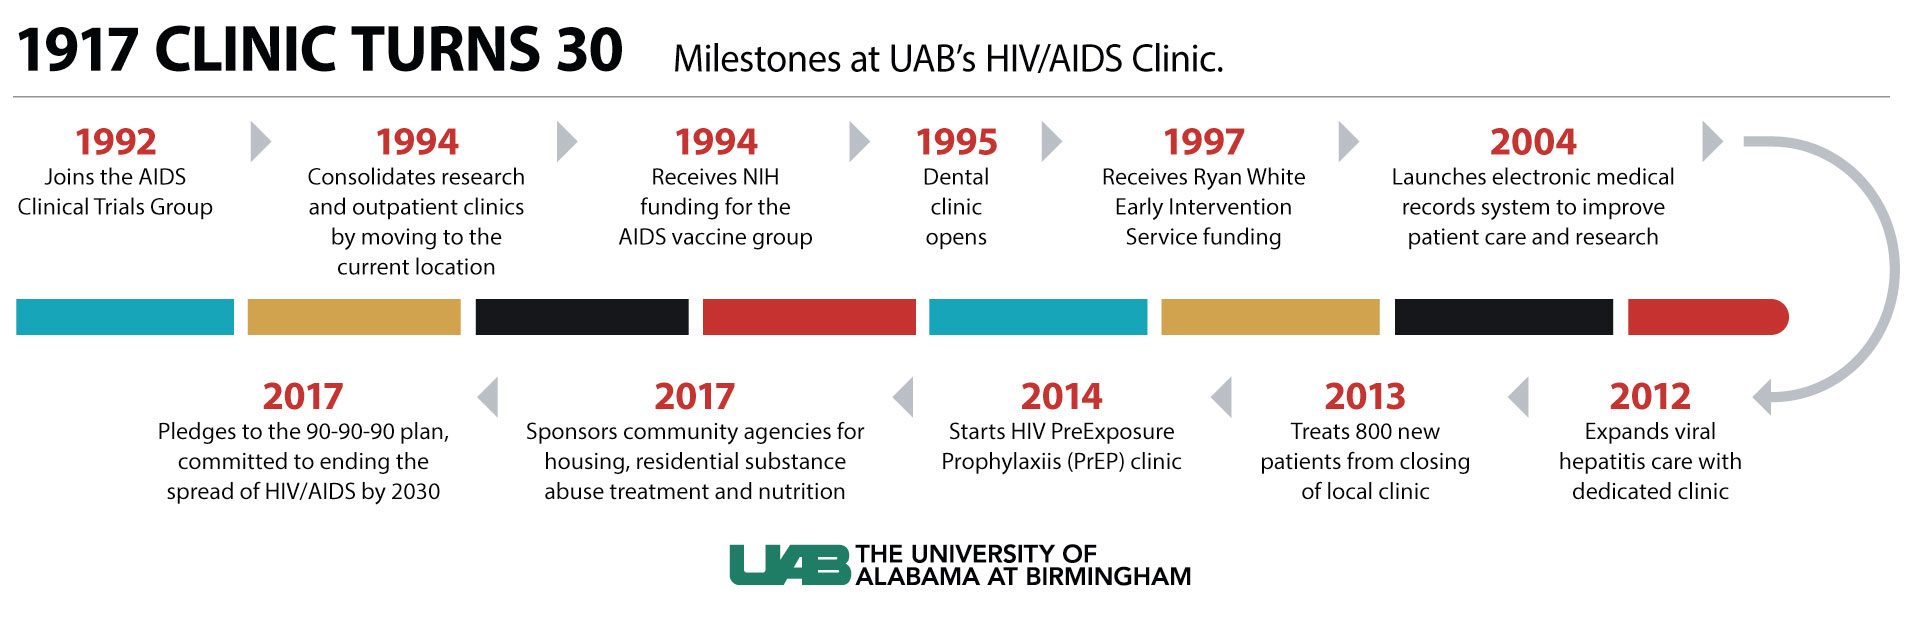 hiv past and present The past, present, and future of hiv funding january 22, 2018 this article was published on the american journal of managed care's website on december 11, 2017.